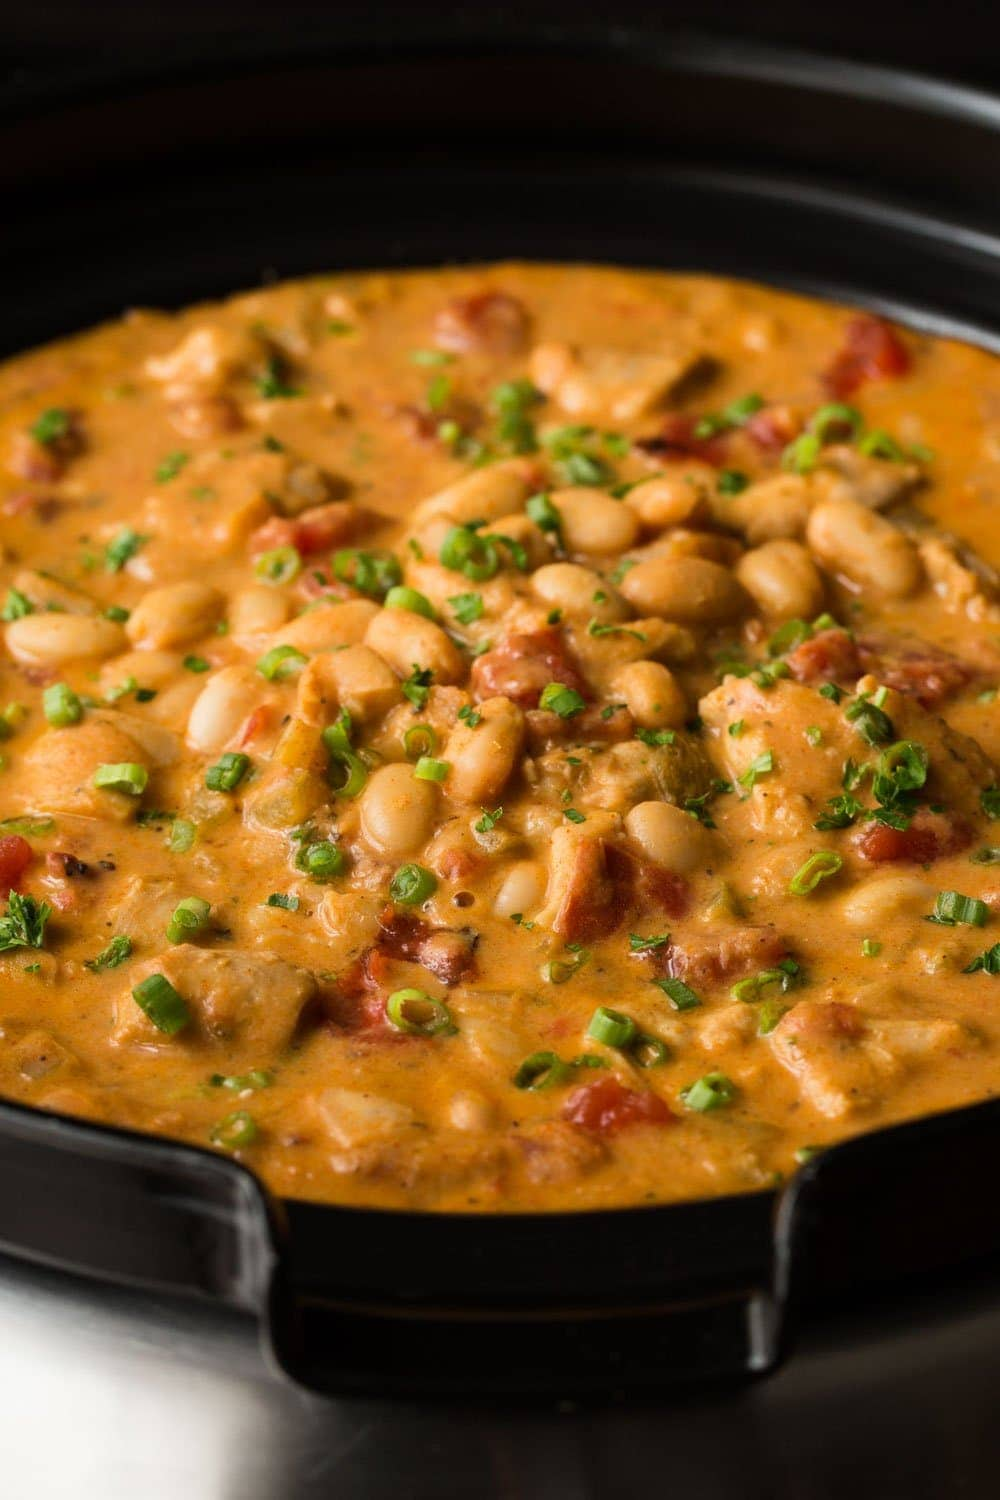 Slow Cooker Buffalo Chicken Chili - drawing on the flavor of classic Buffalo chicken wings, this chili is super easy, and loaded with delicious flavor! thecafesucrefarine.com